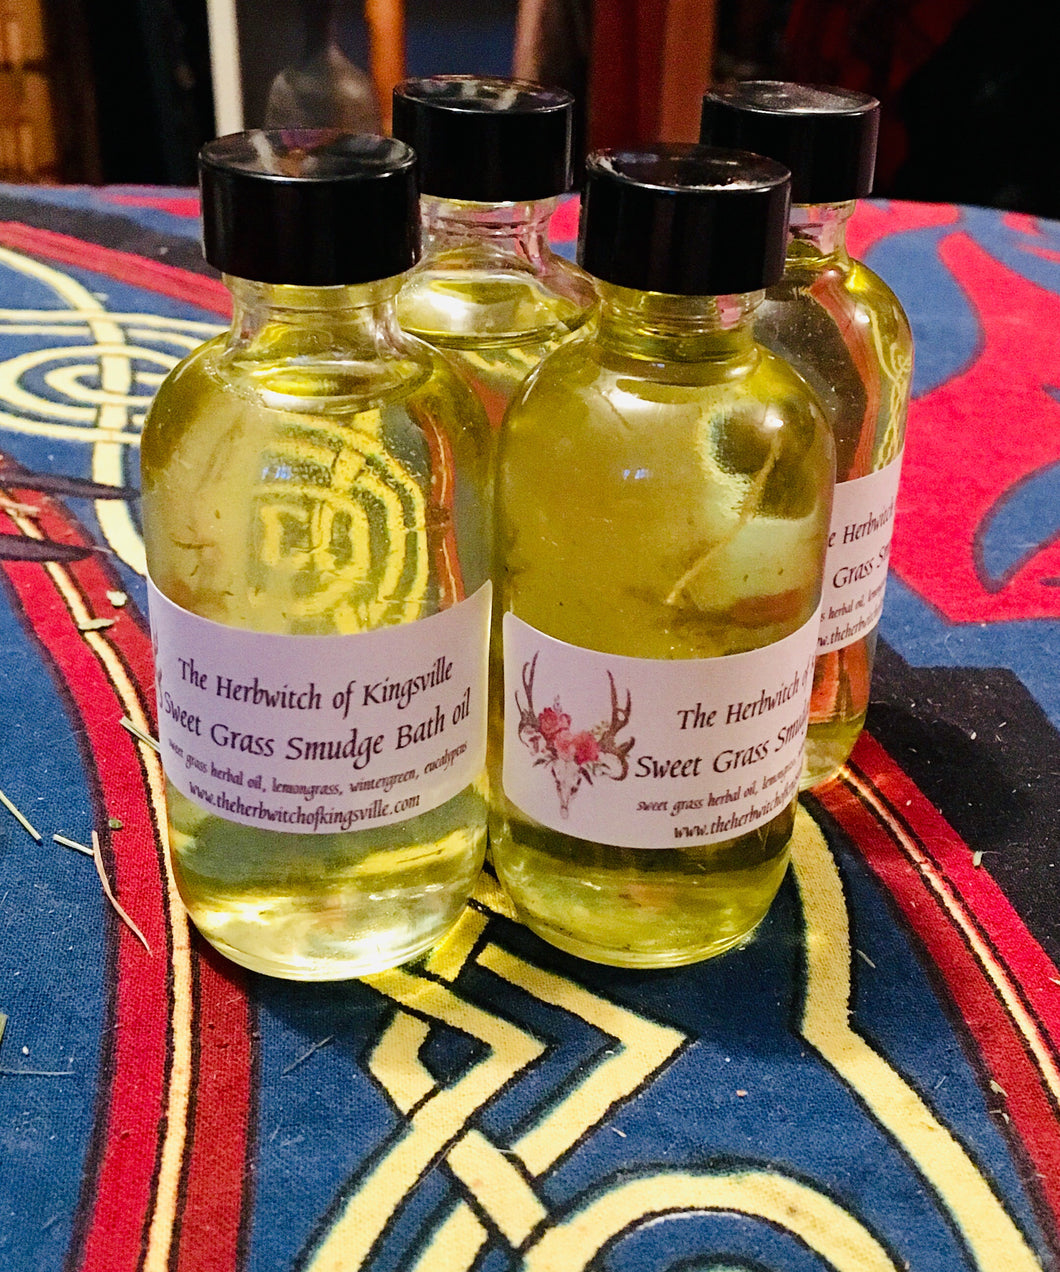 Sweet grass Smudge bath oil 2 oz